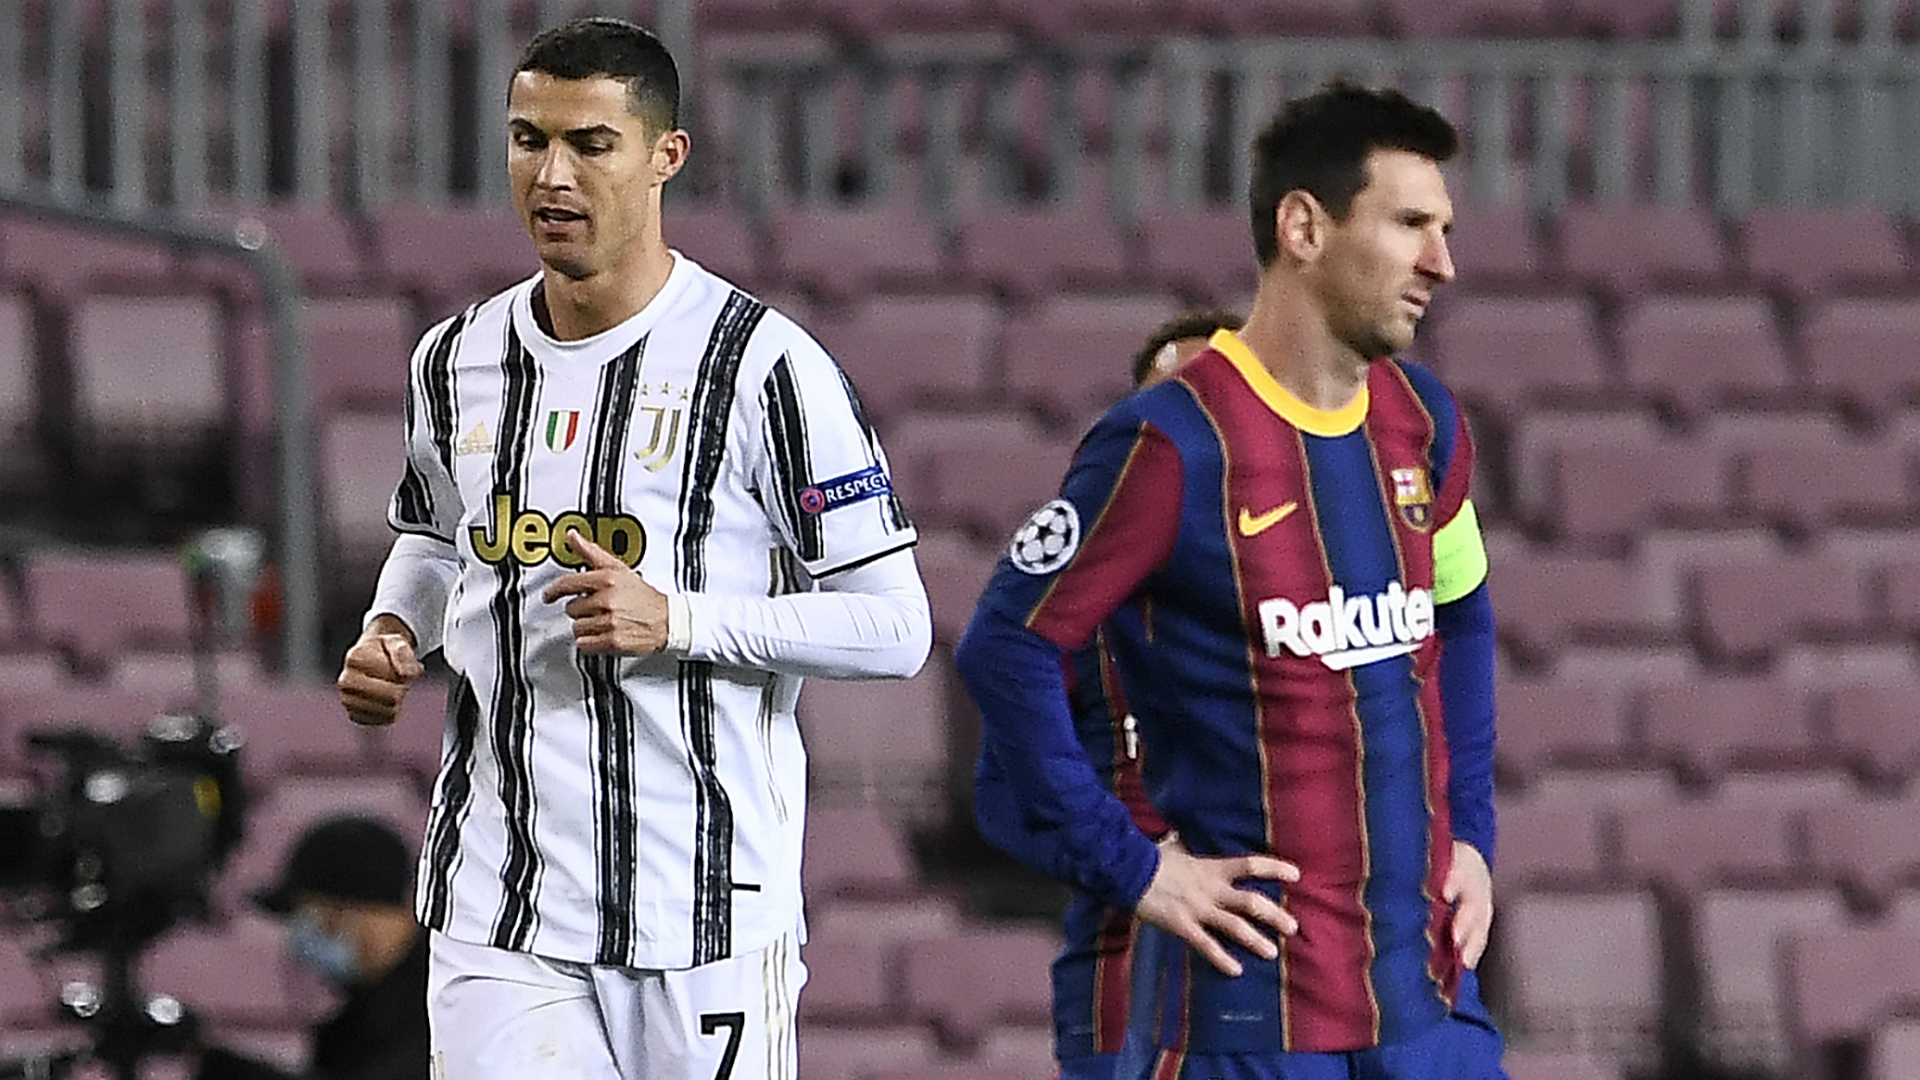 Lionel Messi: Cristiano Ronaldo stands out in football